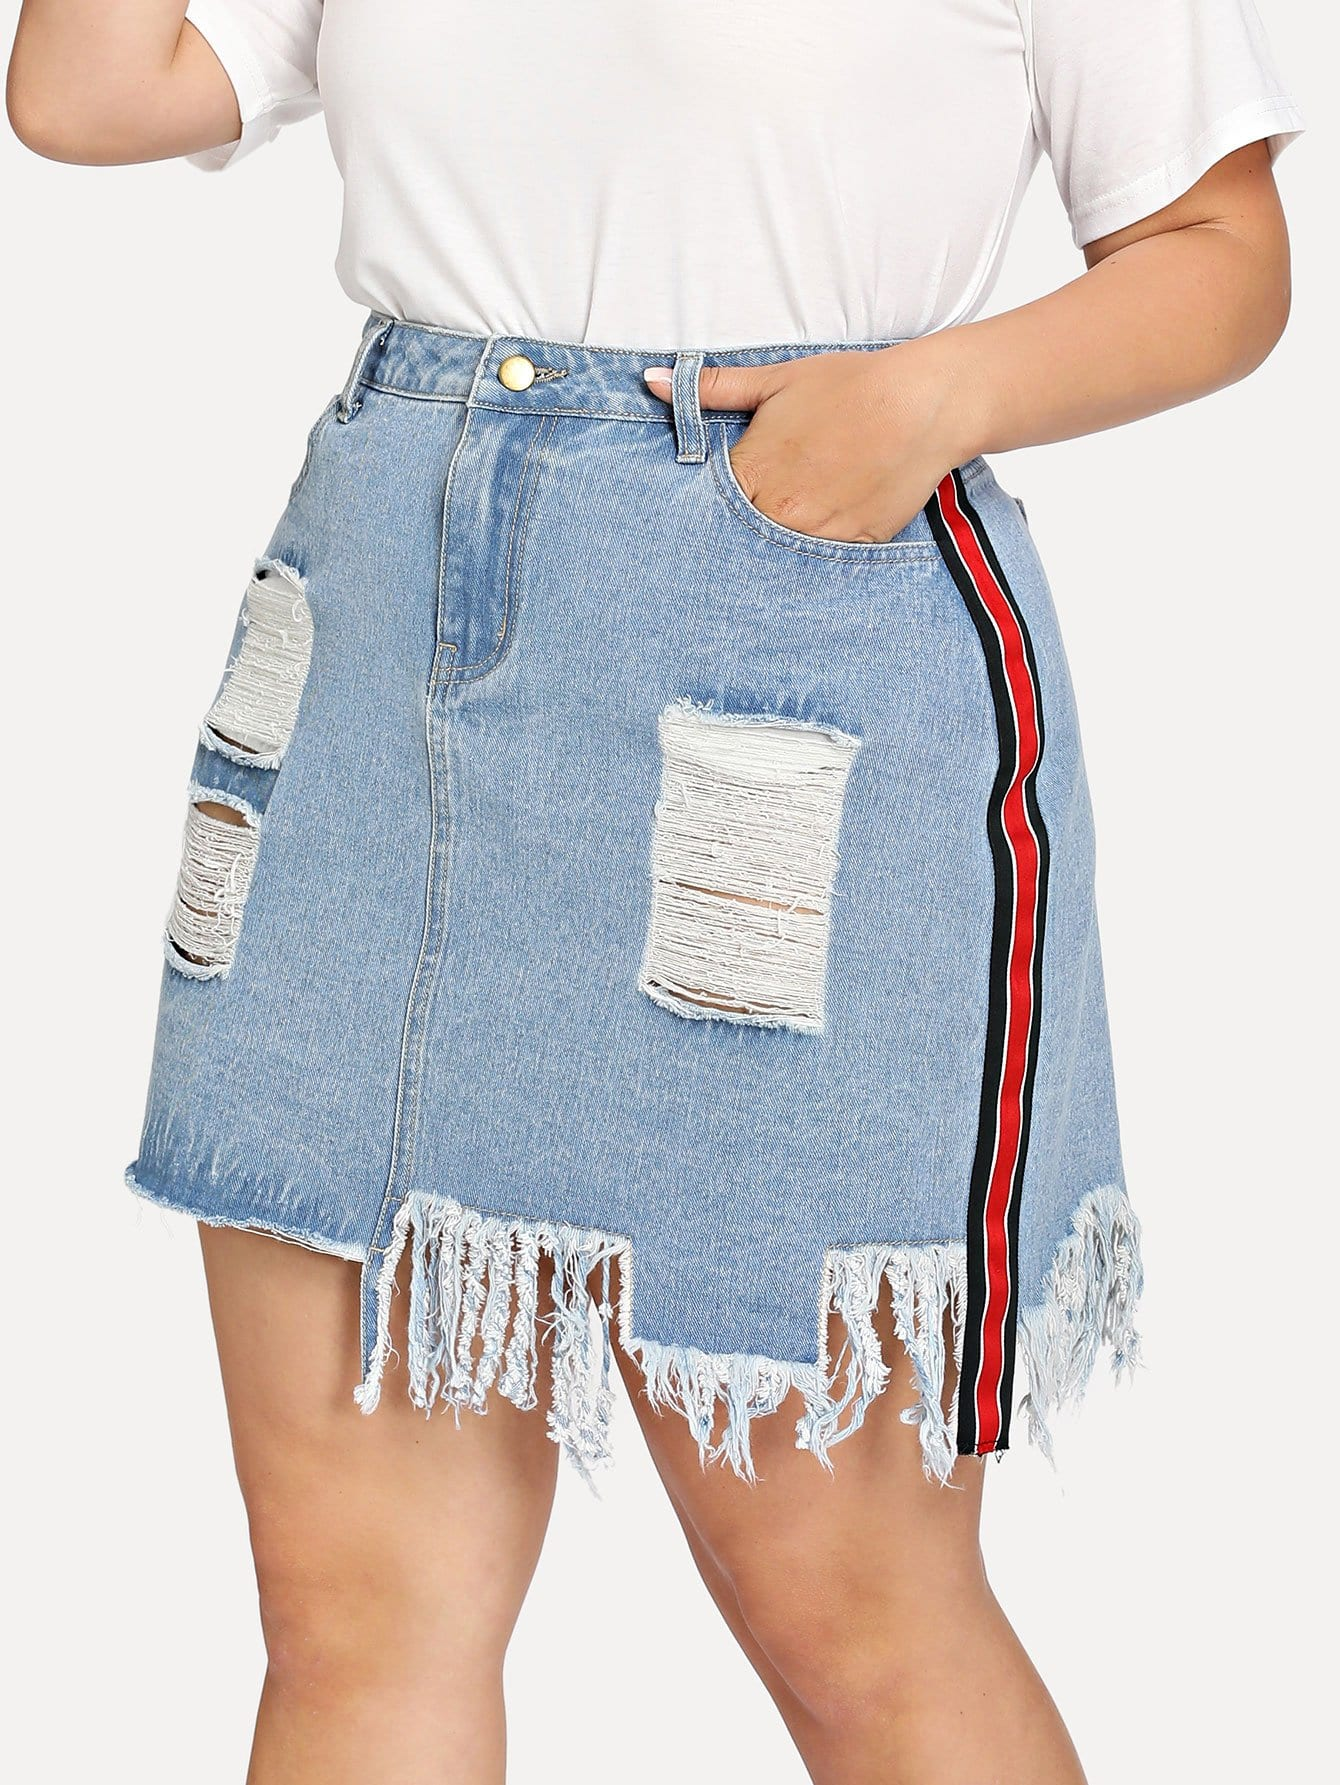 Striped Tape Side Distressed Denim Skirt striped tape side legging shorts